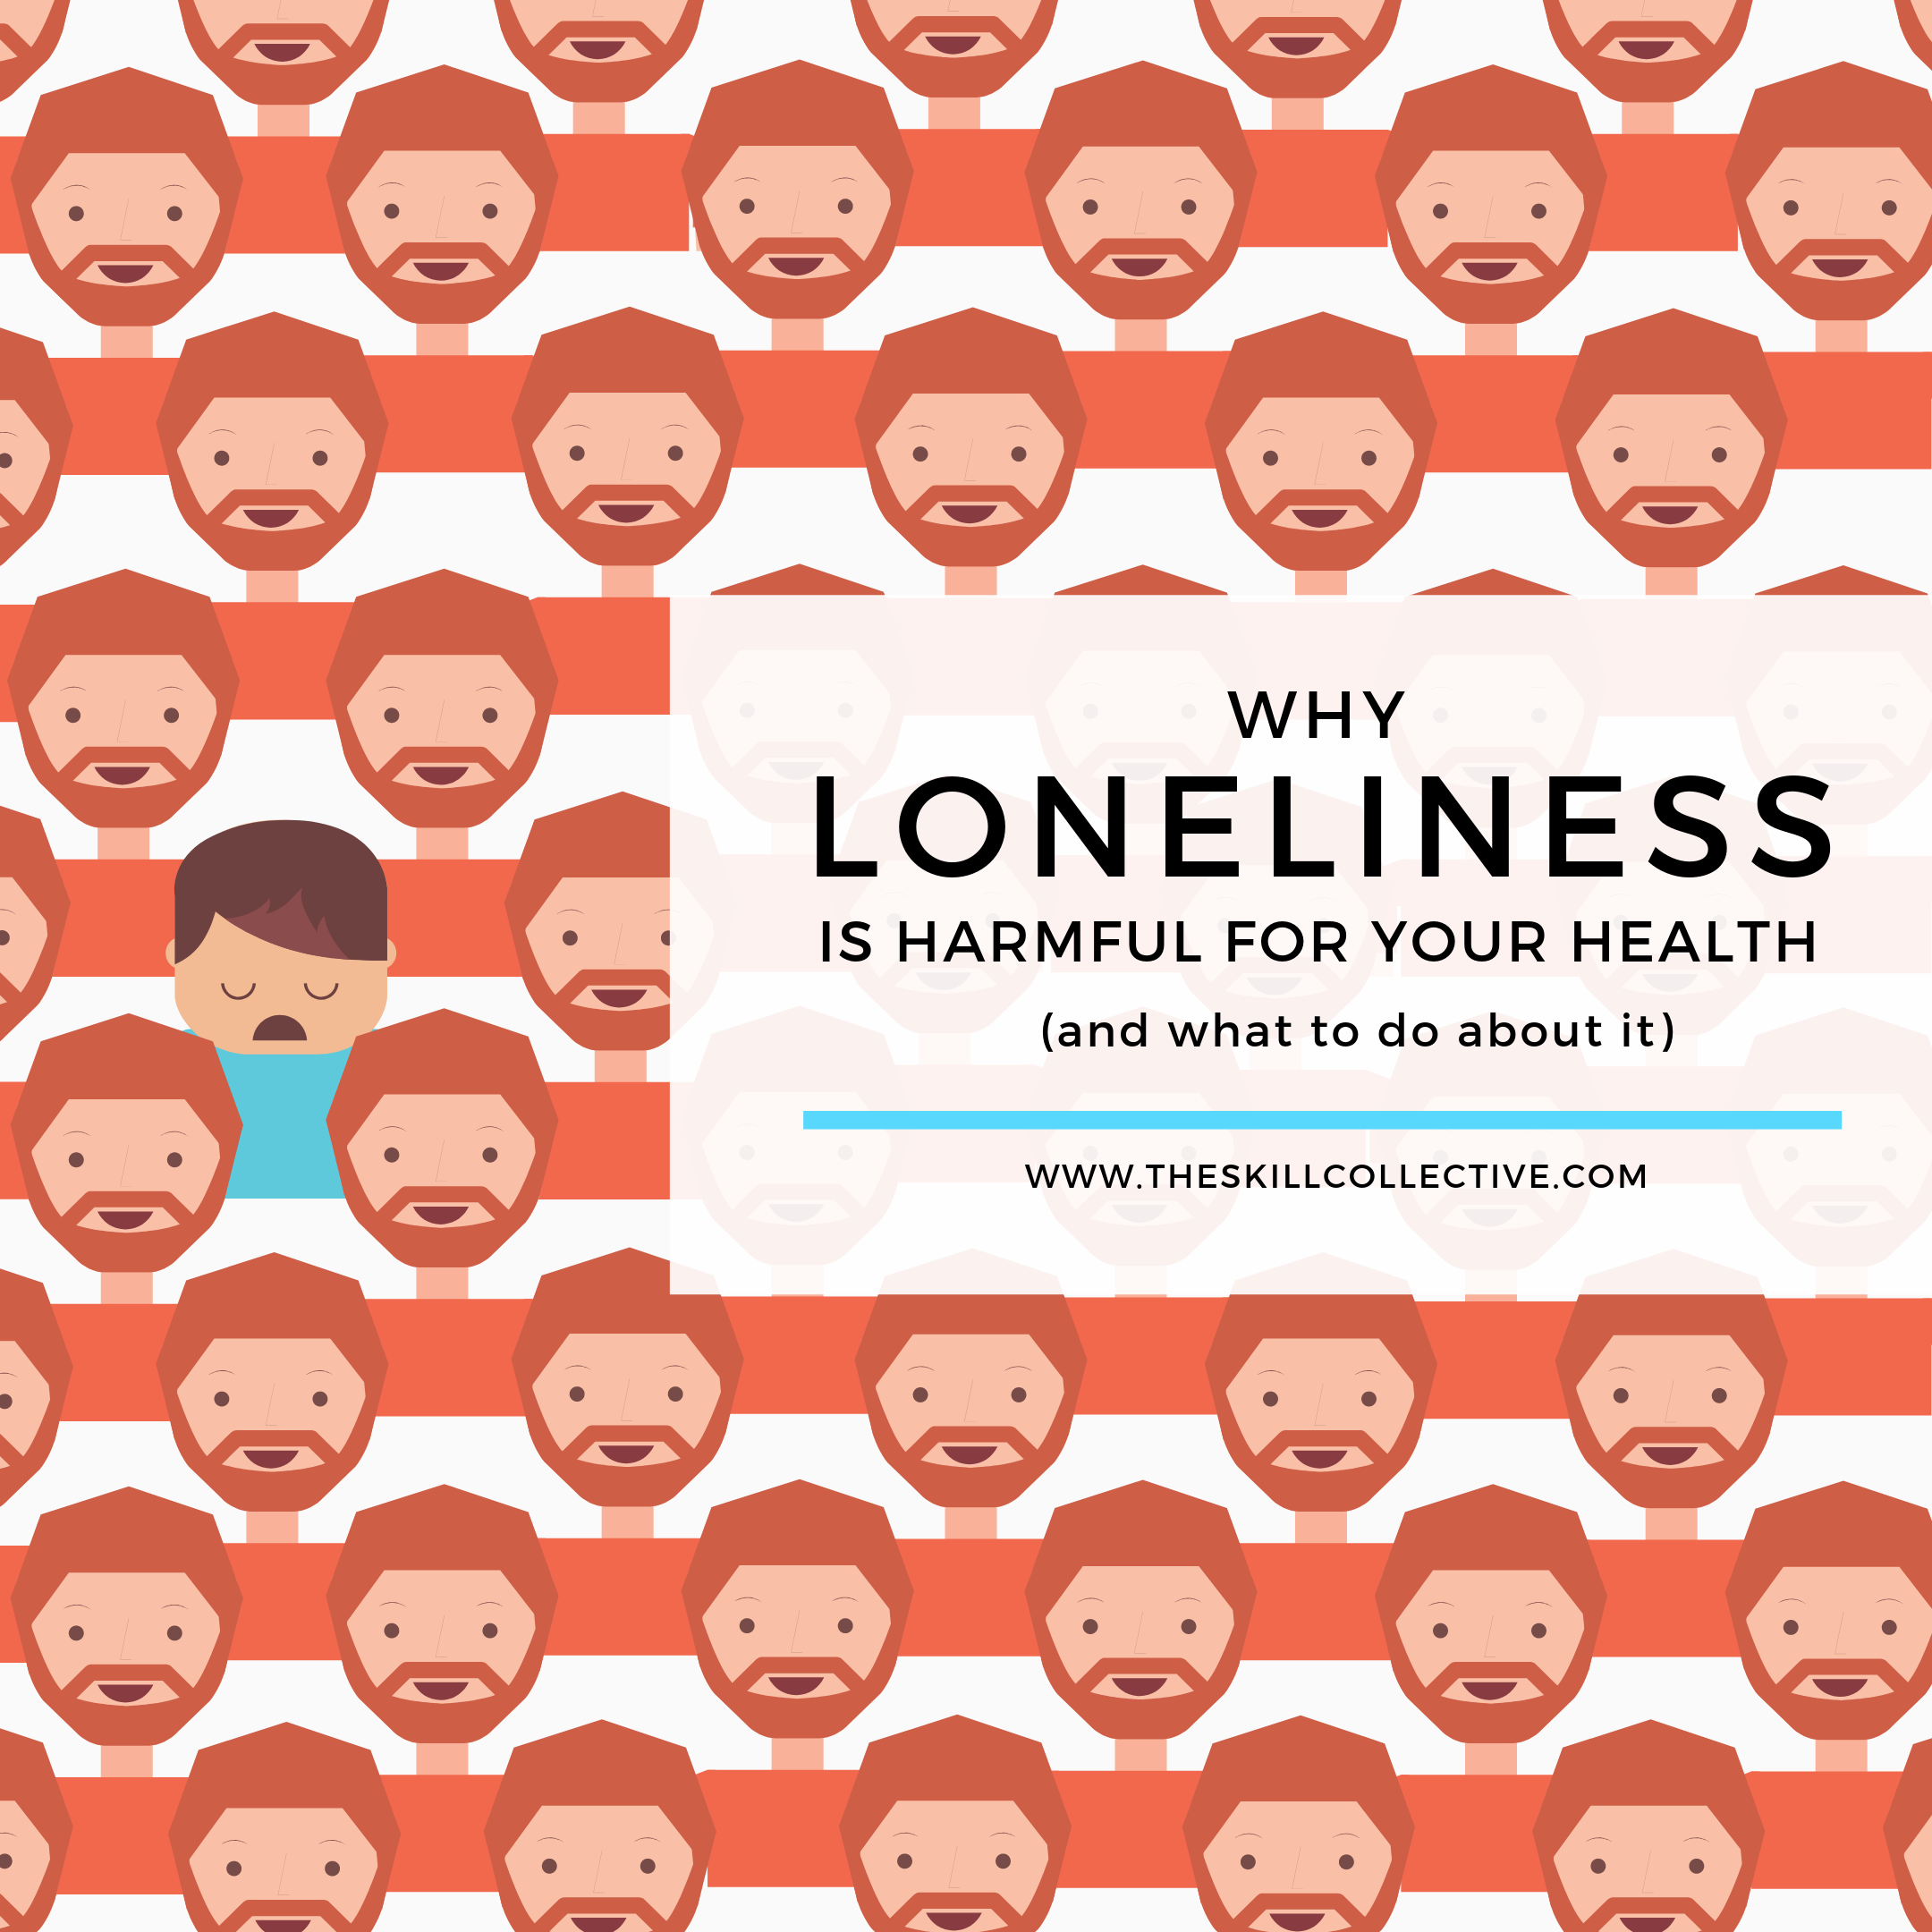 Why loneliness is bad for your health - tips for loneliness social anxiety and depression by The Skill Collective Clinical Psychologists and counsellors in Subiaco Perth